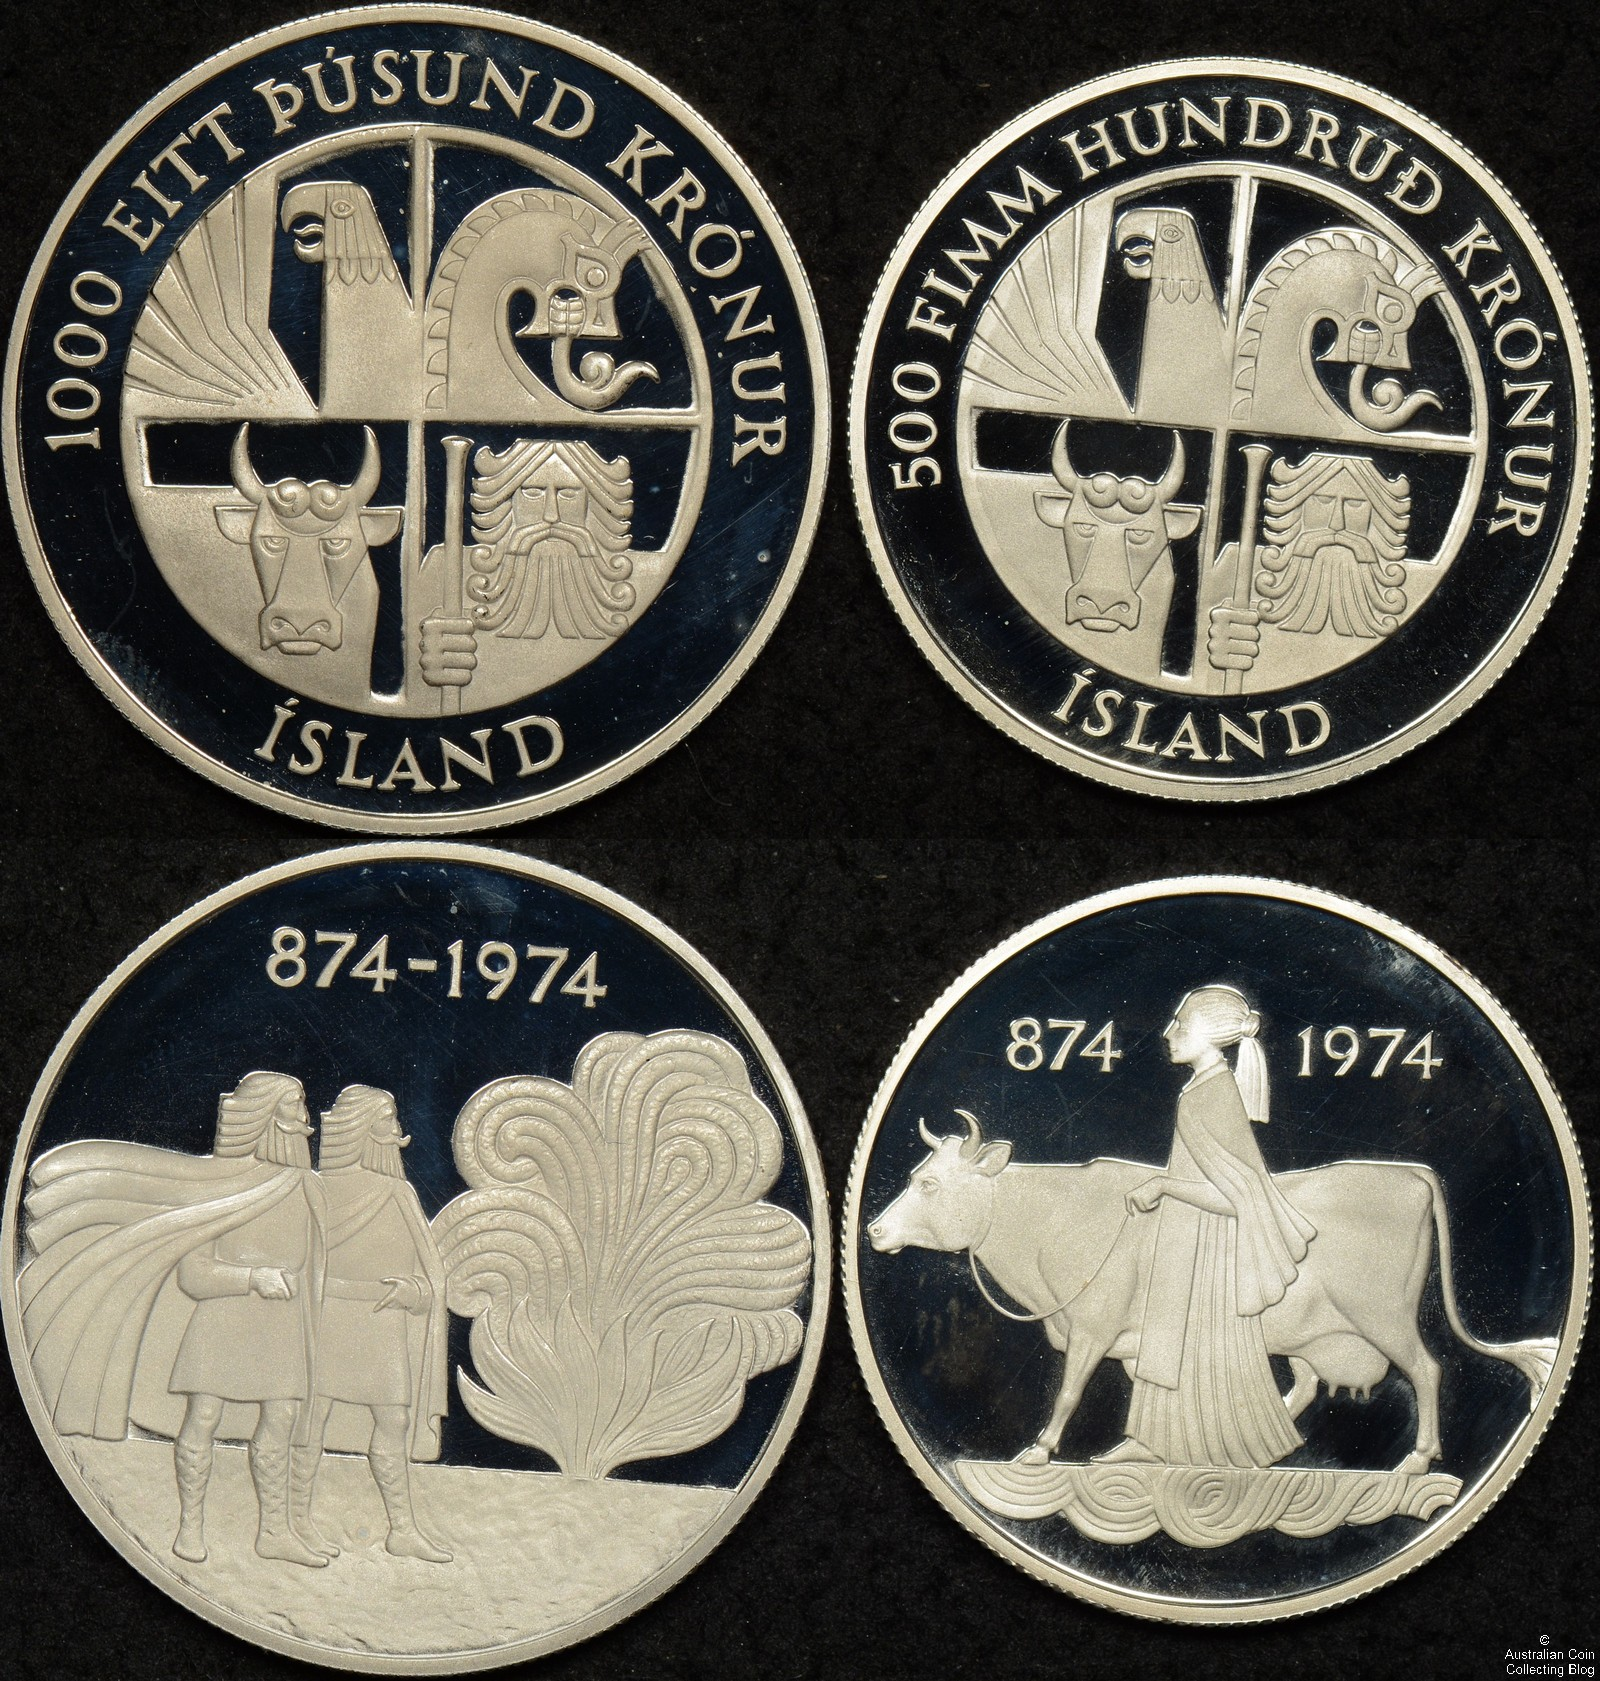 Iceland 1974 Two Coin Proof Set